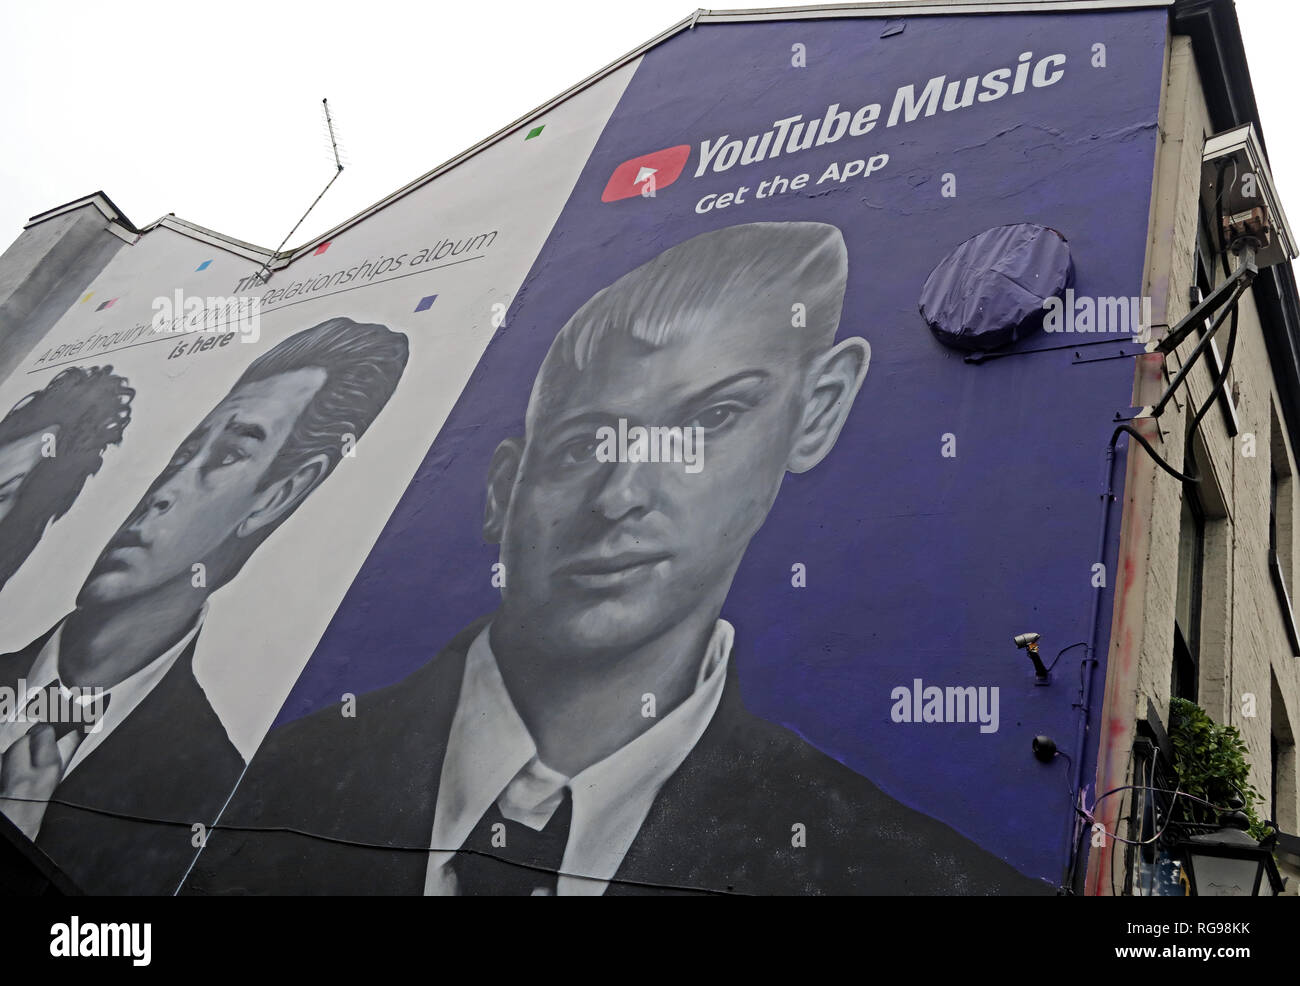 YouTube Music Get The App Advert, on gable end of building, Shude Hill, Manchester City Centre, North West England, UK, M4 2AF Stock Photo